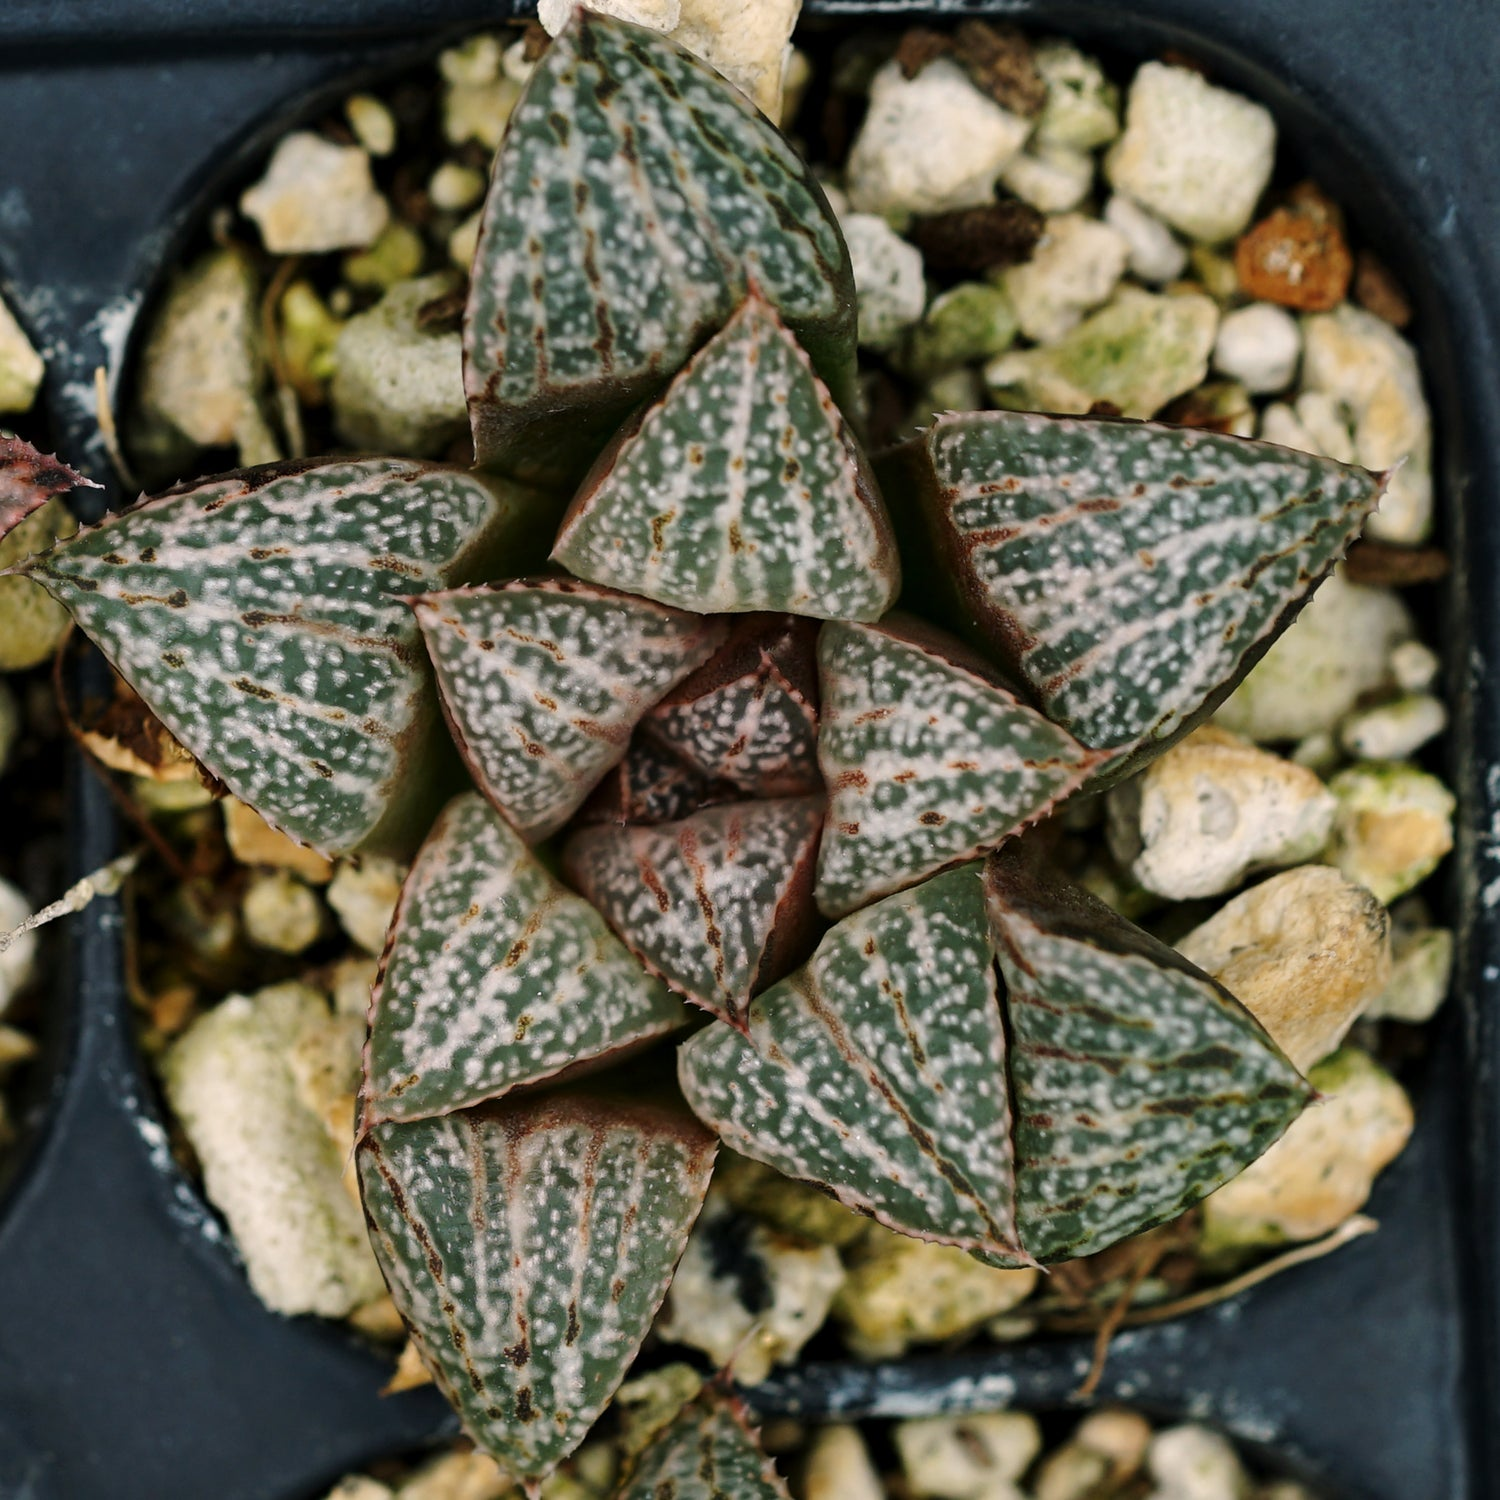 Haworthia splendens hybrid series PP202, 4 siblings